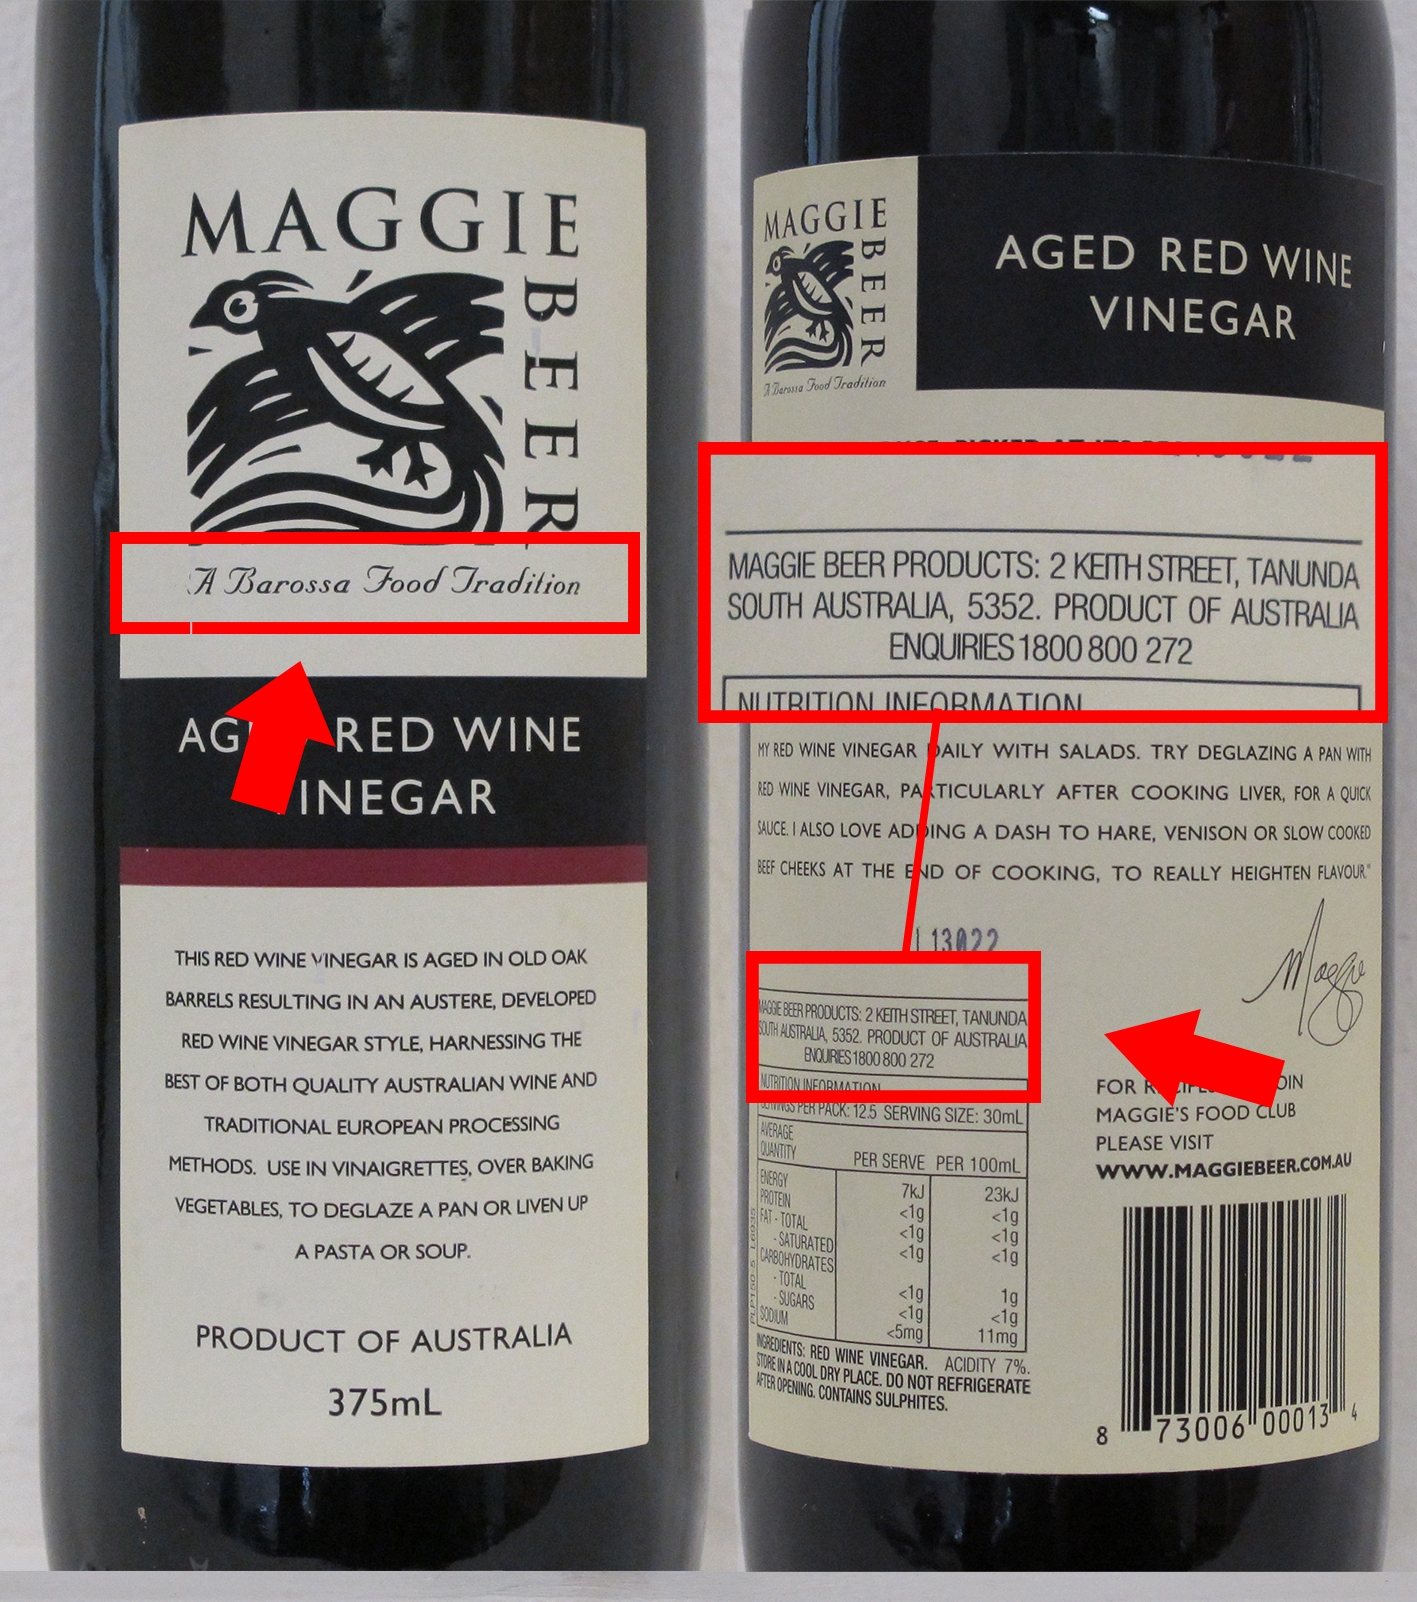 Maggie Beer Products Aged Red Wine Vinegar